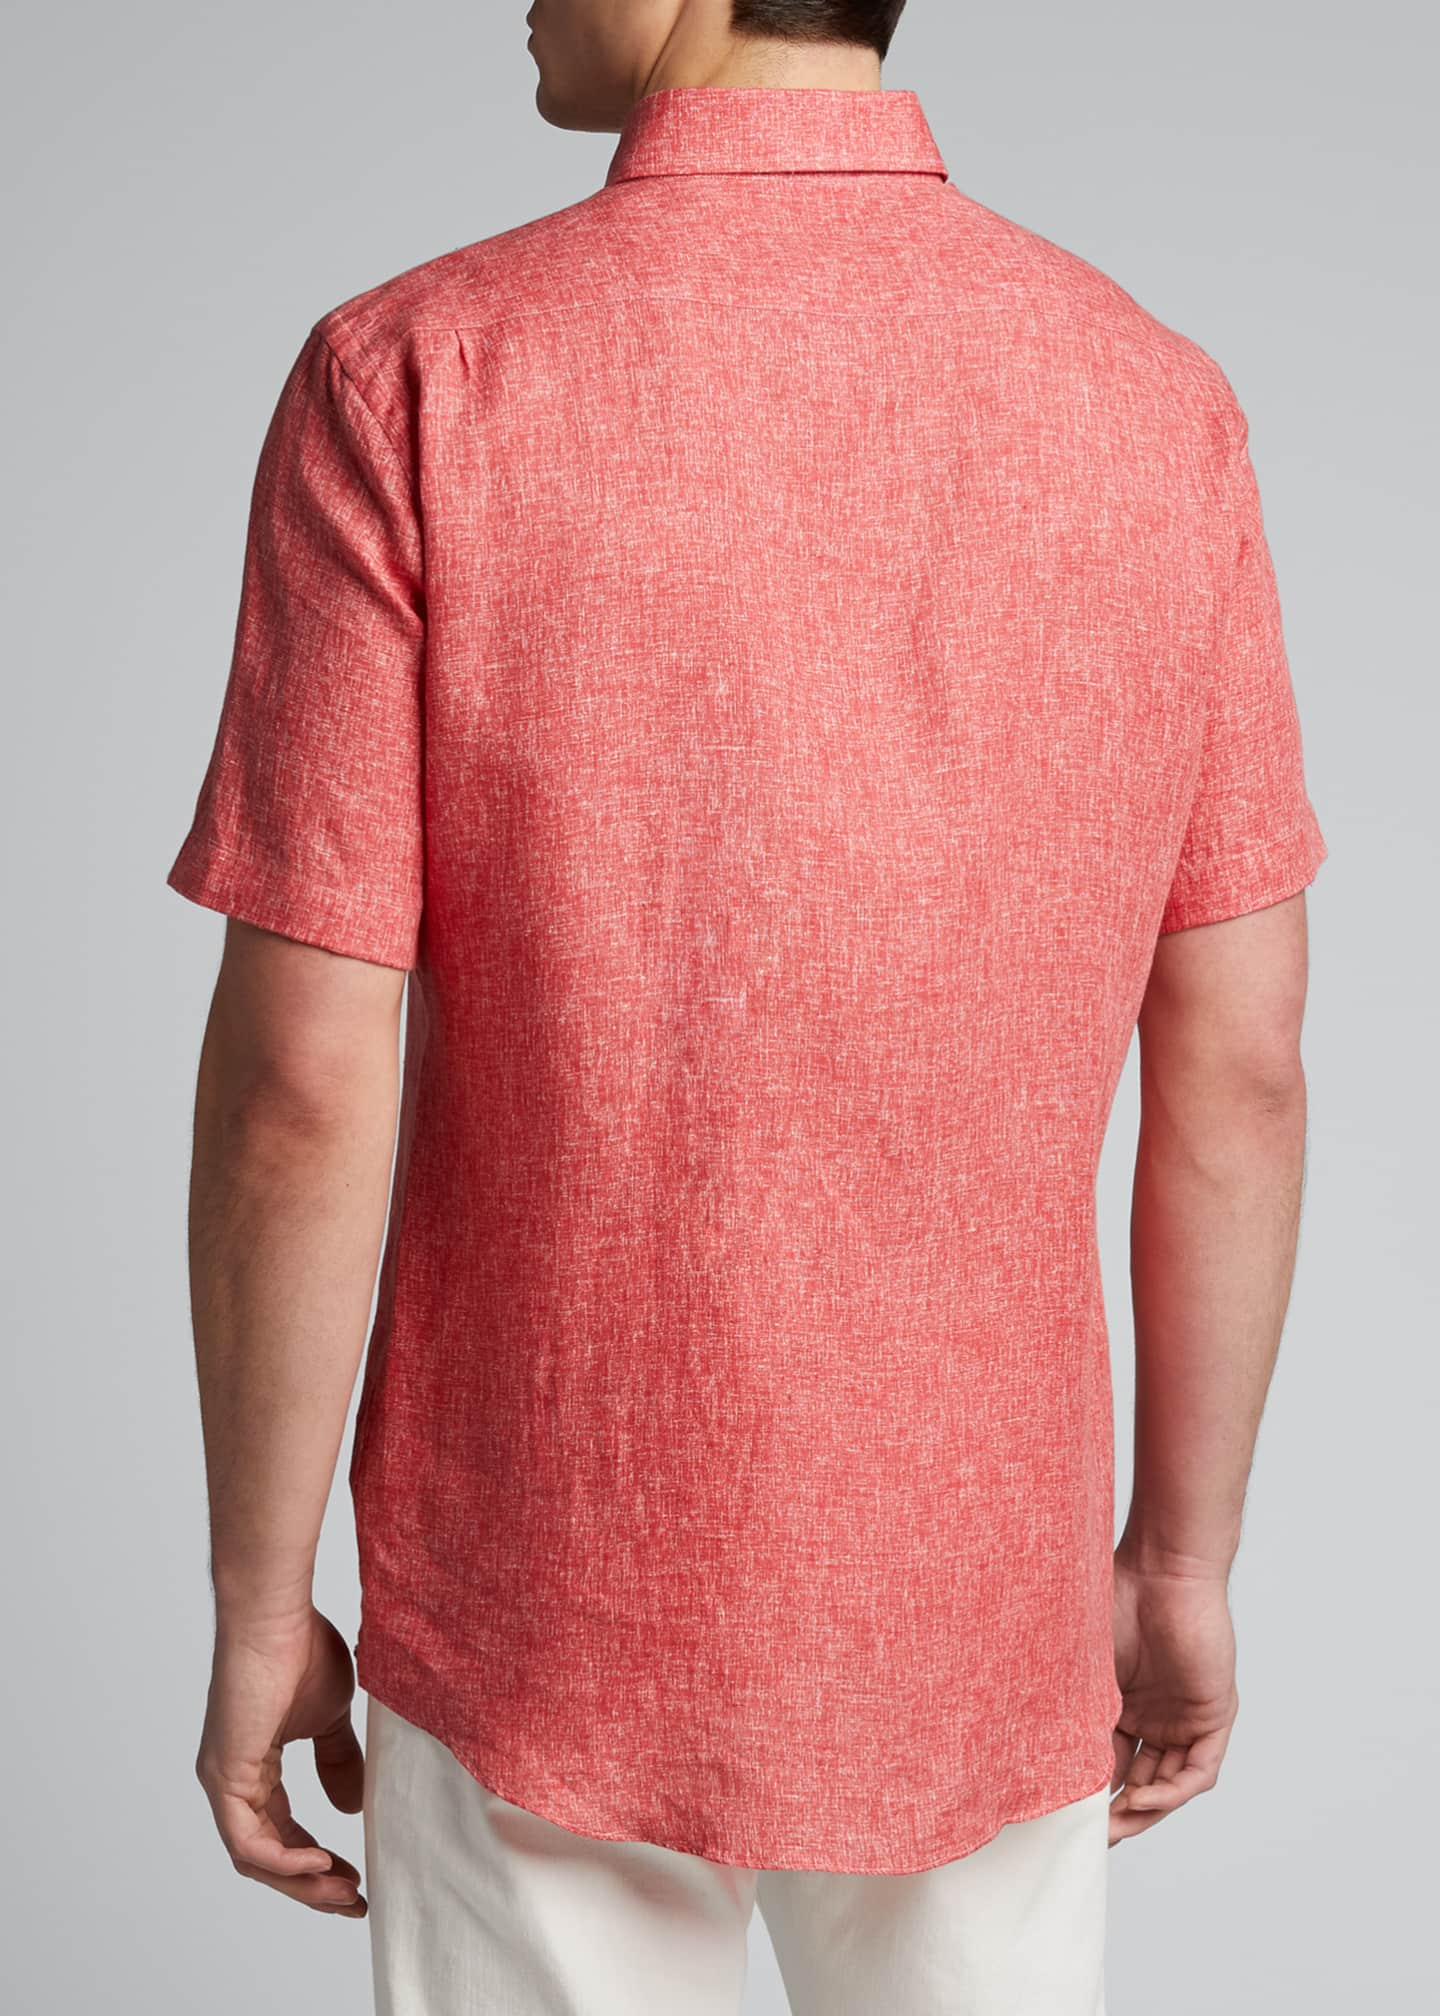 Image 2 of 5: Men's Solid Yarn-Dyed Linen Short-Sleeve Sport Shirt